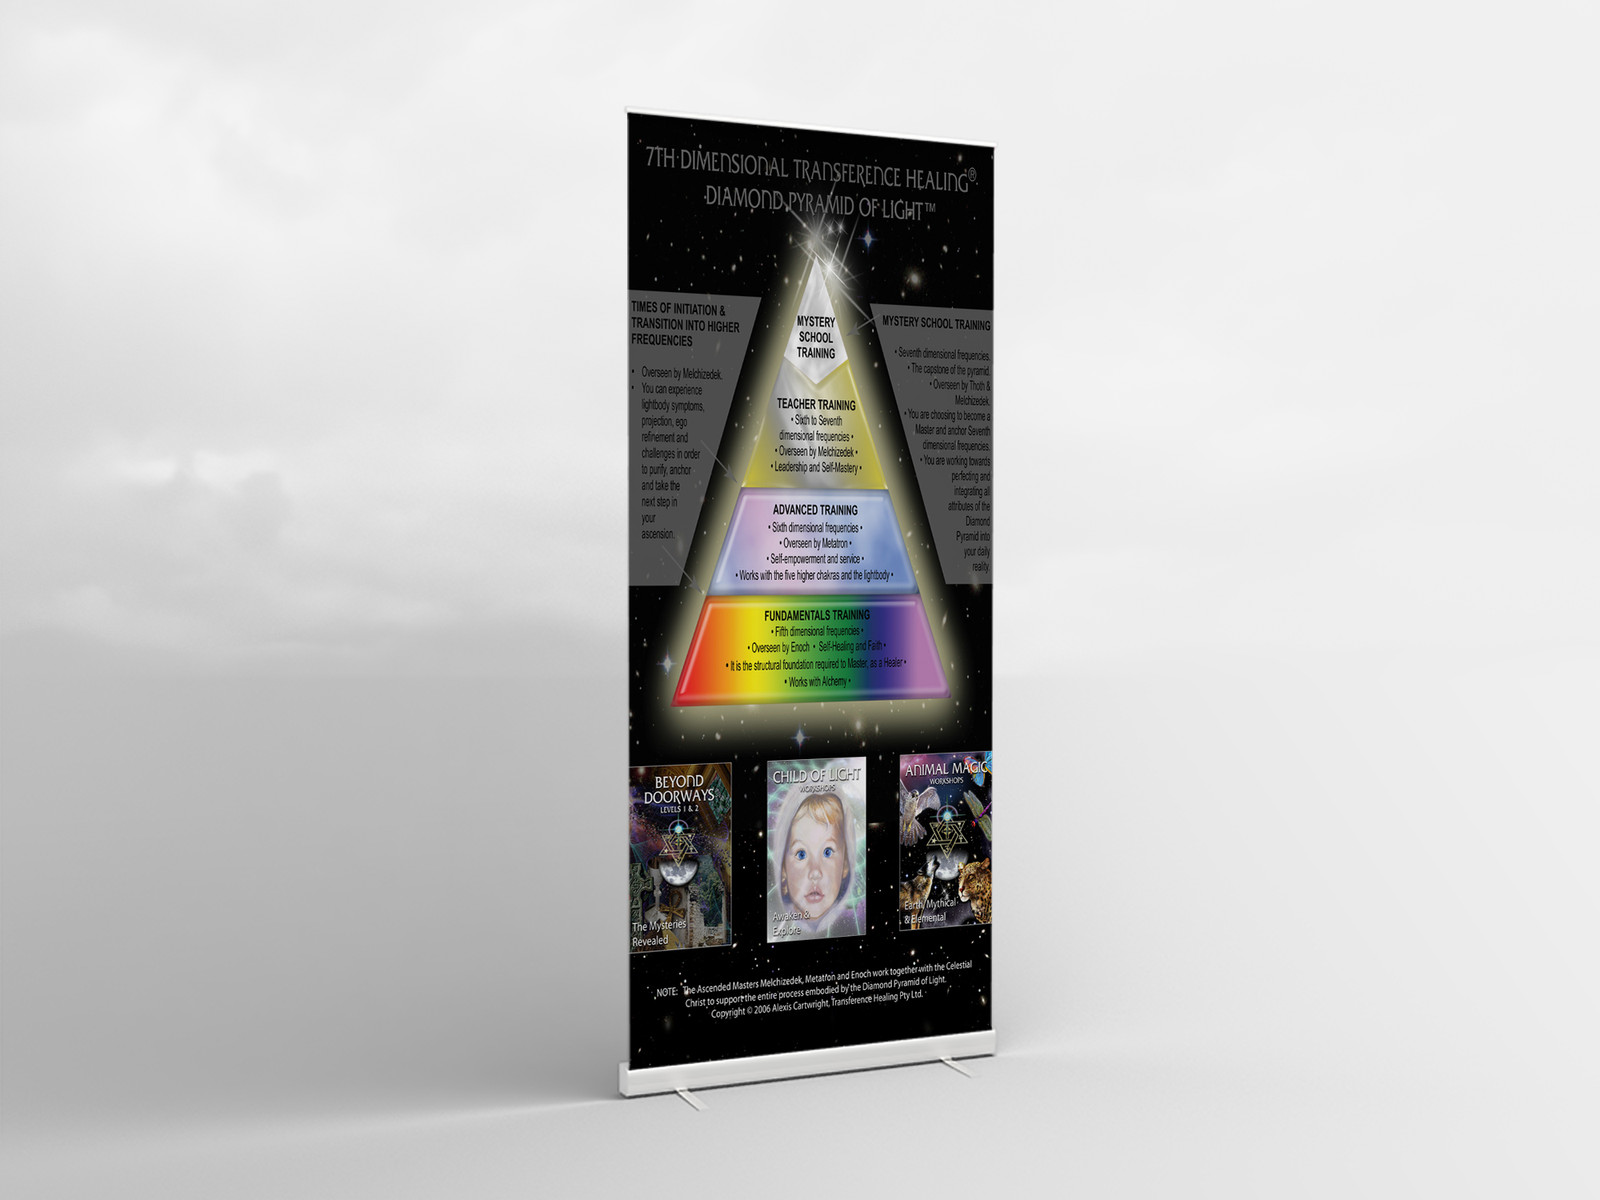 TRANSFERENCE HEALING PROMOTIONAL BANNER